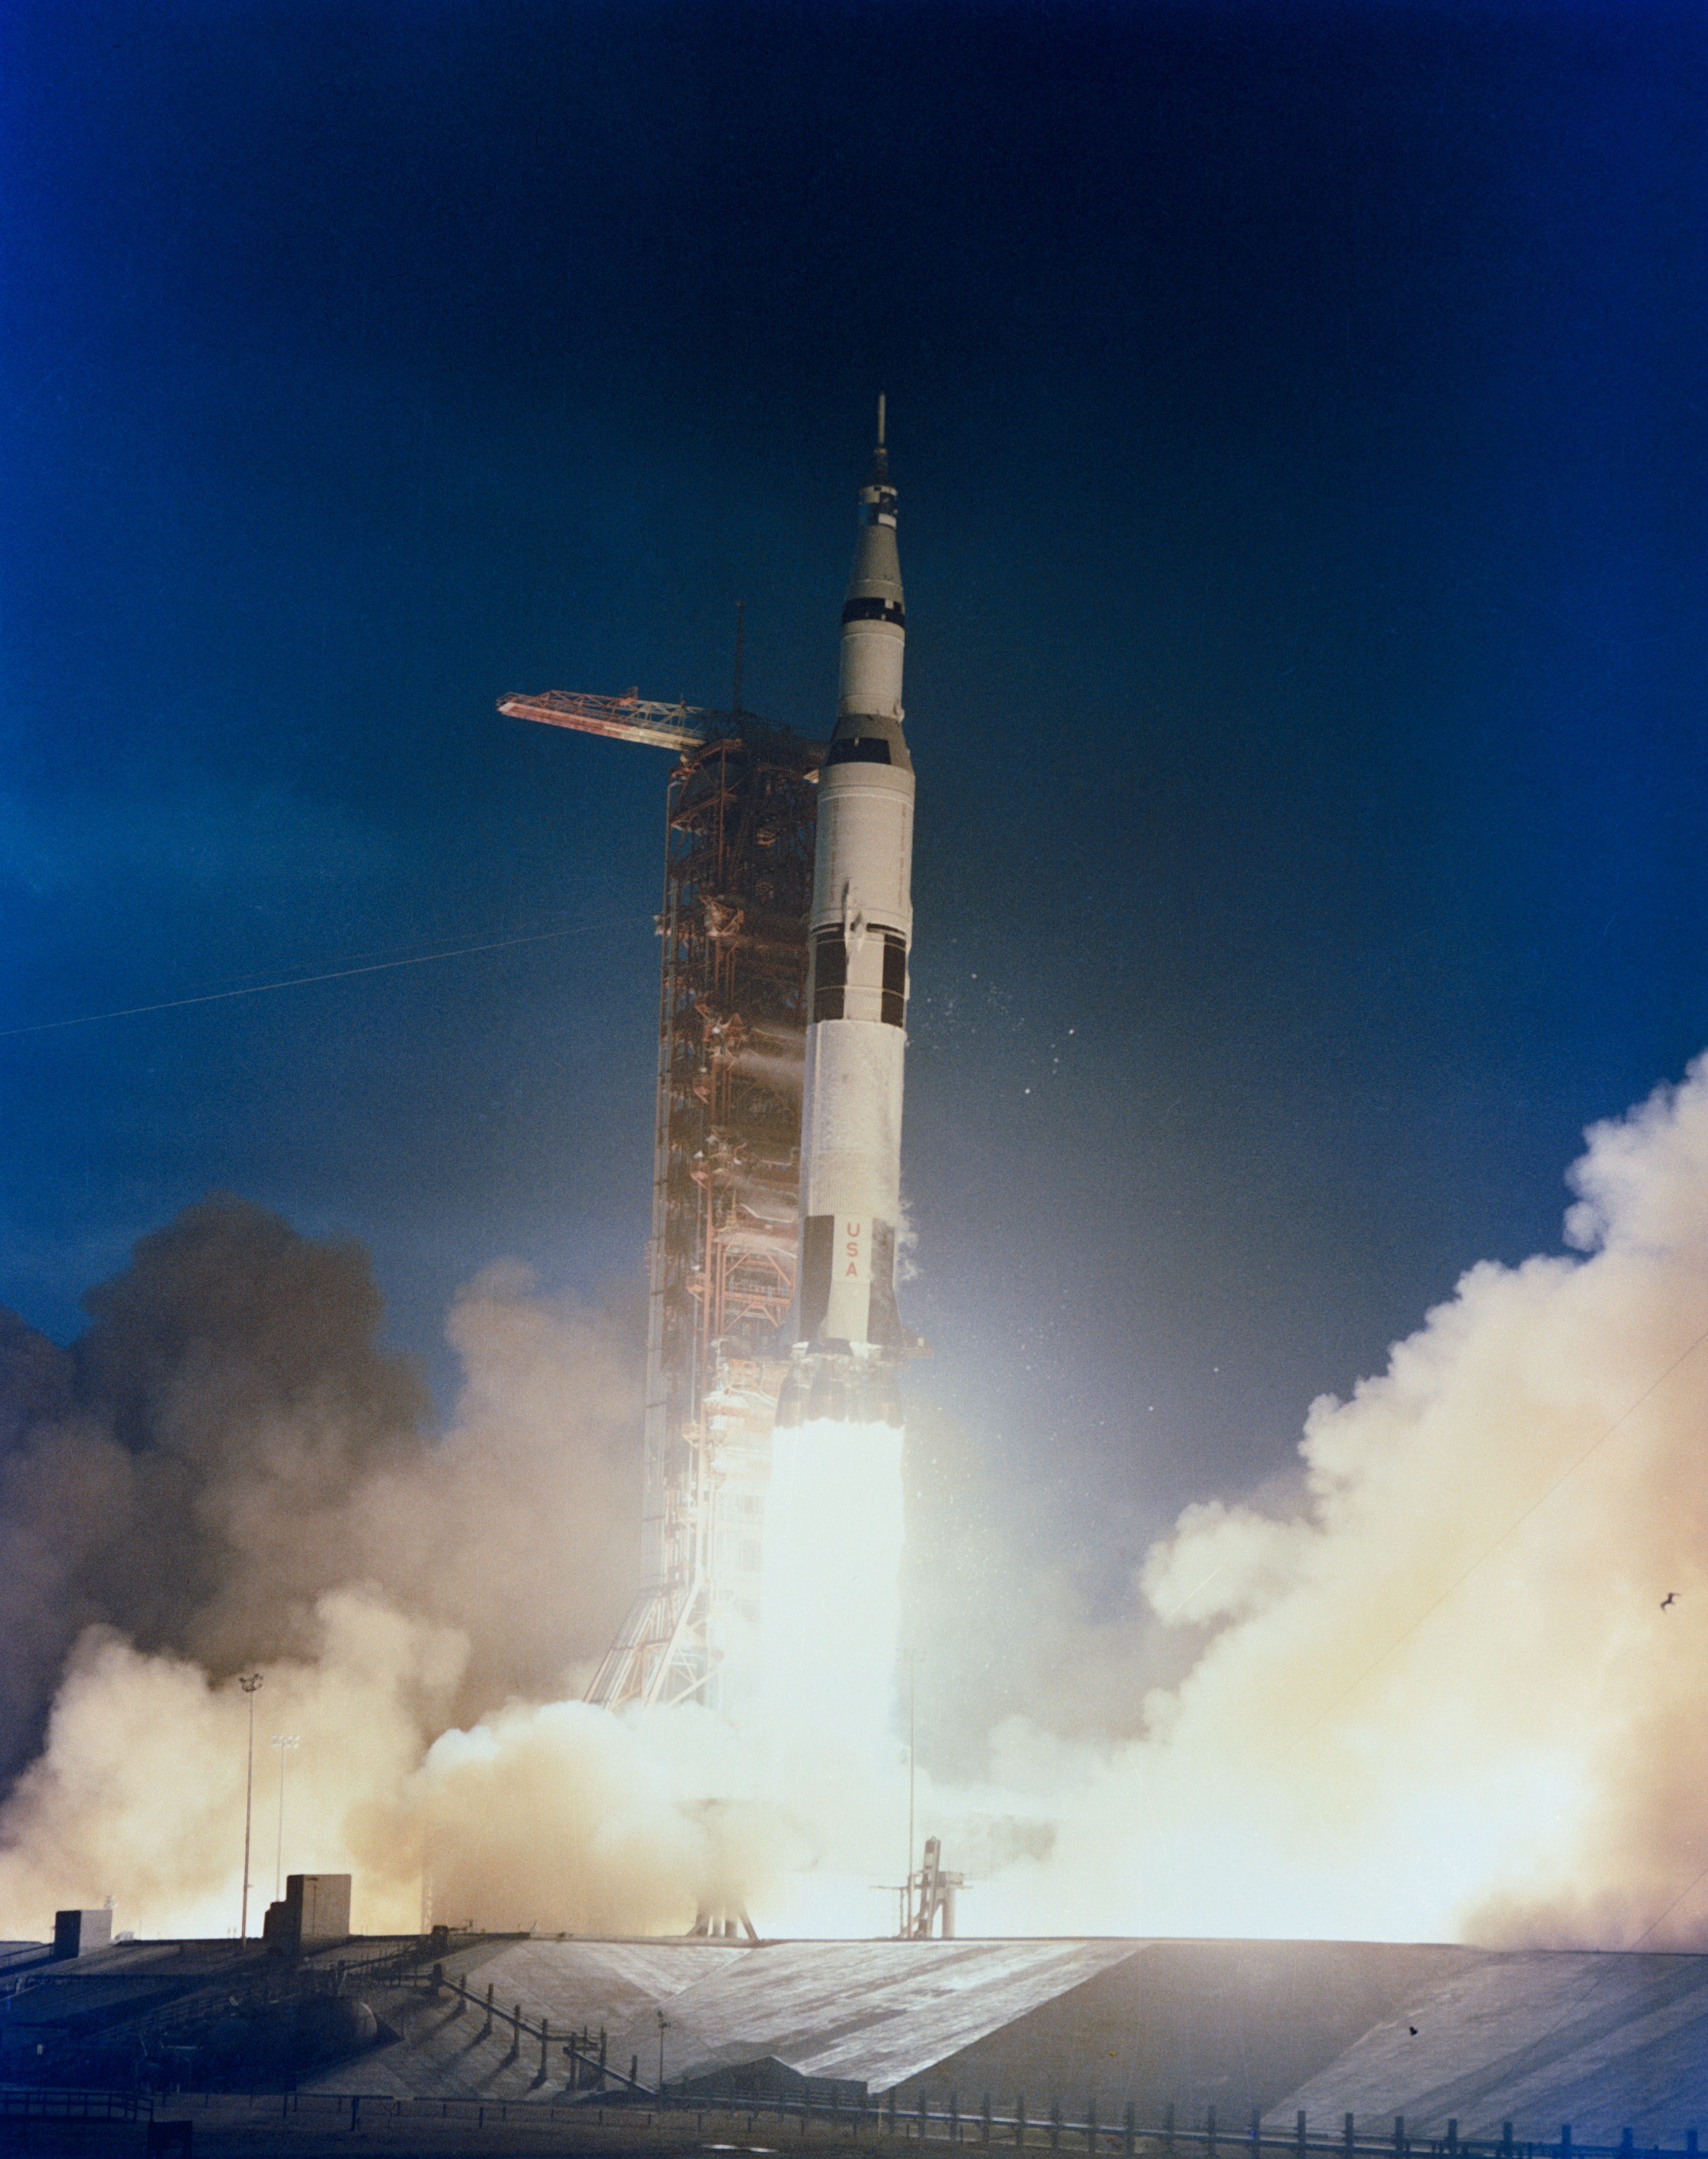 File:Apollo 14 space vehicle is launched from Pad A.jpg - Wikimedia ...